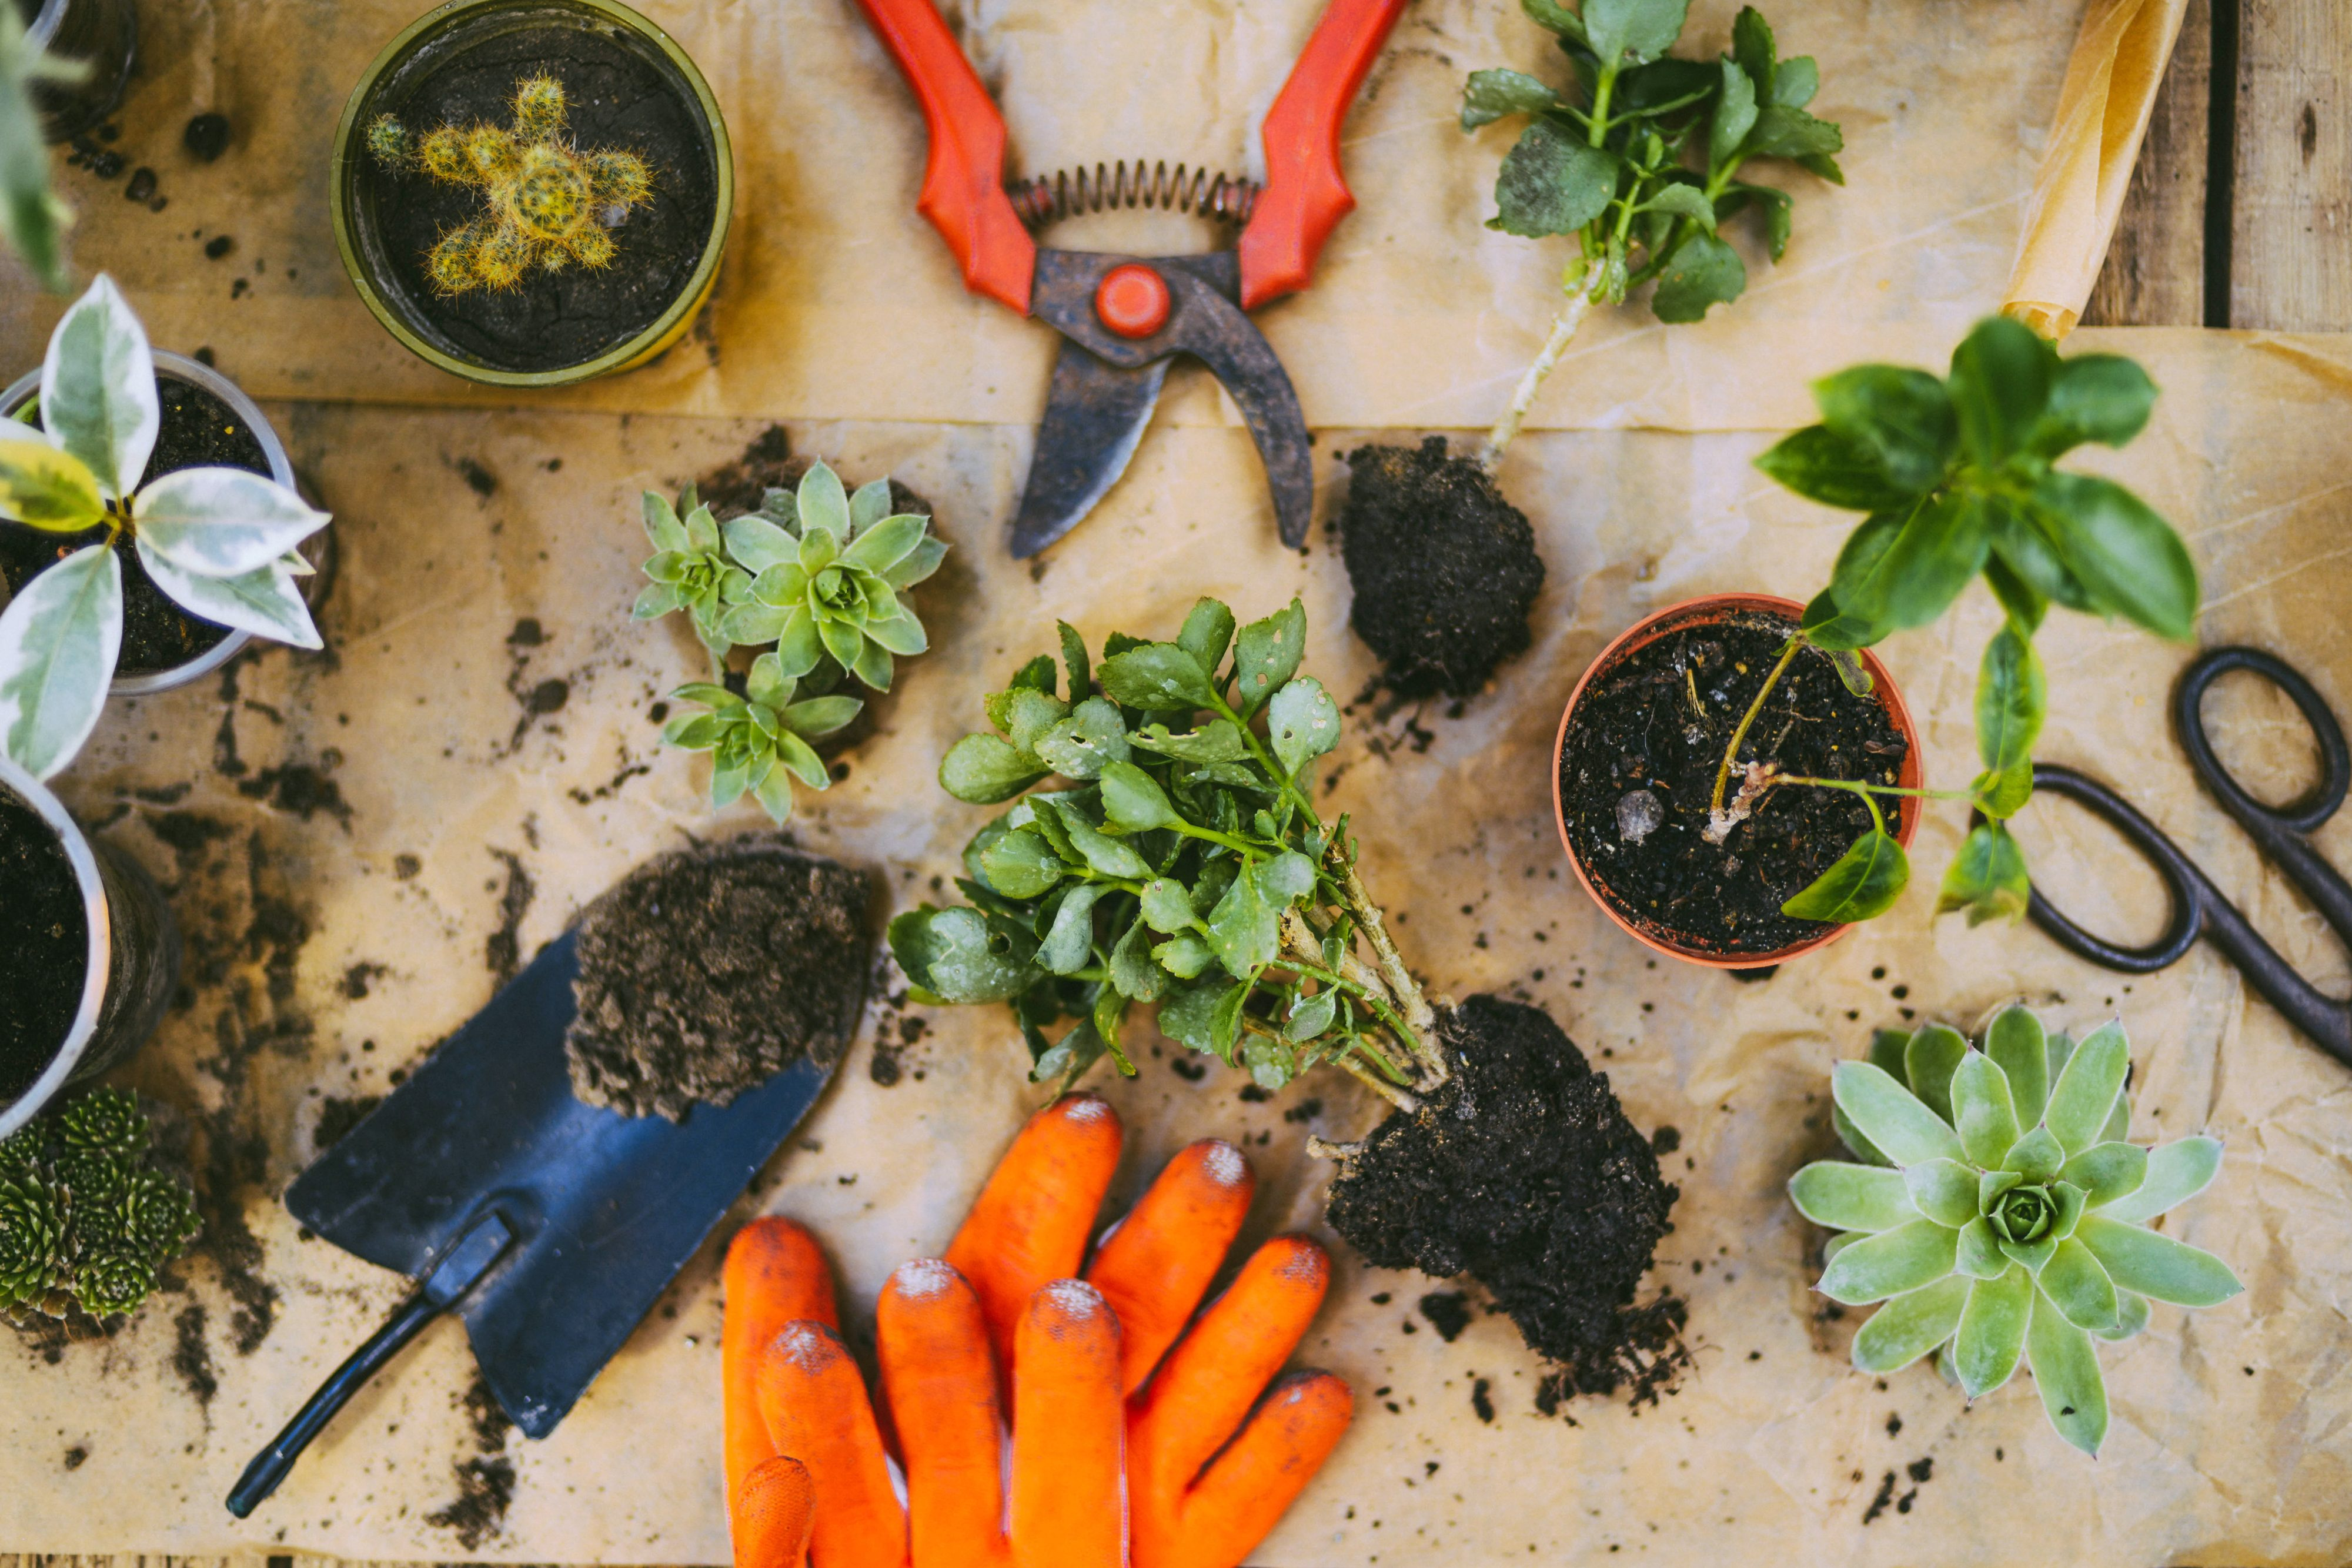 Overhead view of a potting table complete with plant's orange gardening gloves and a trowel